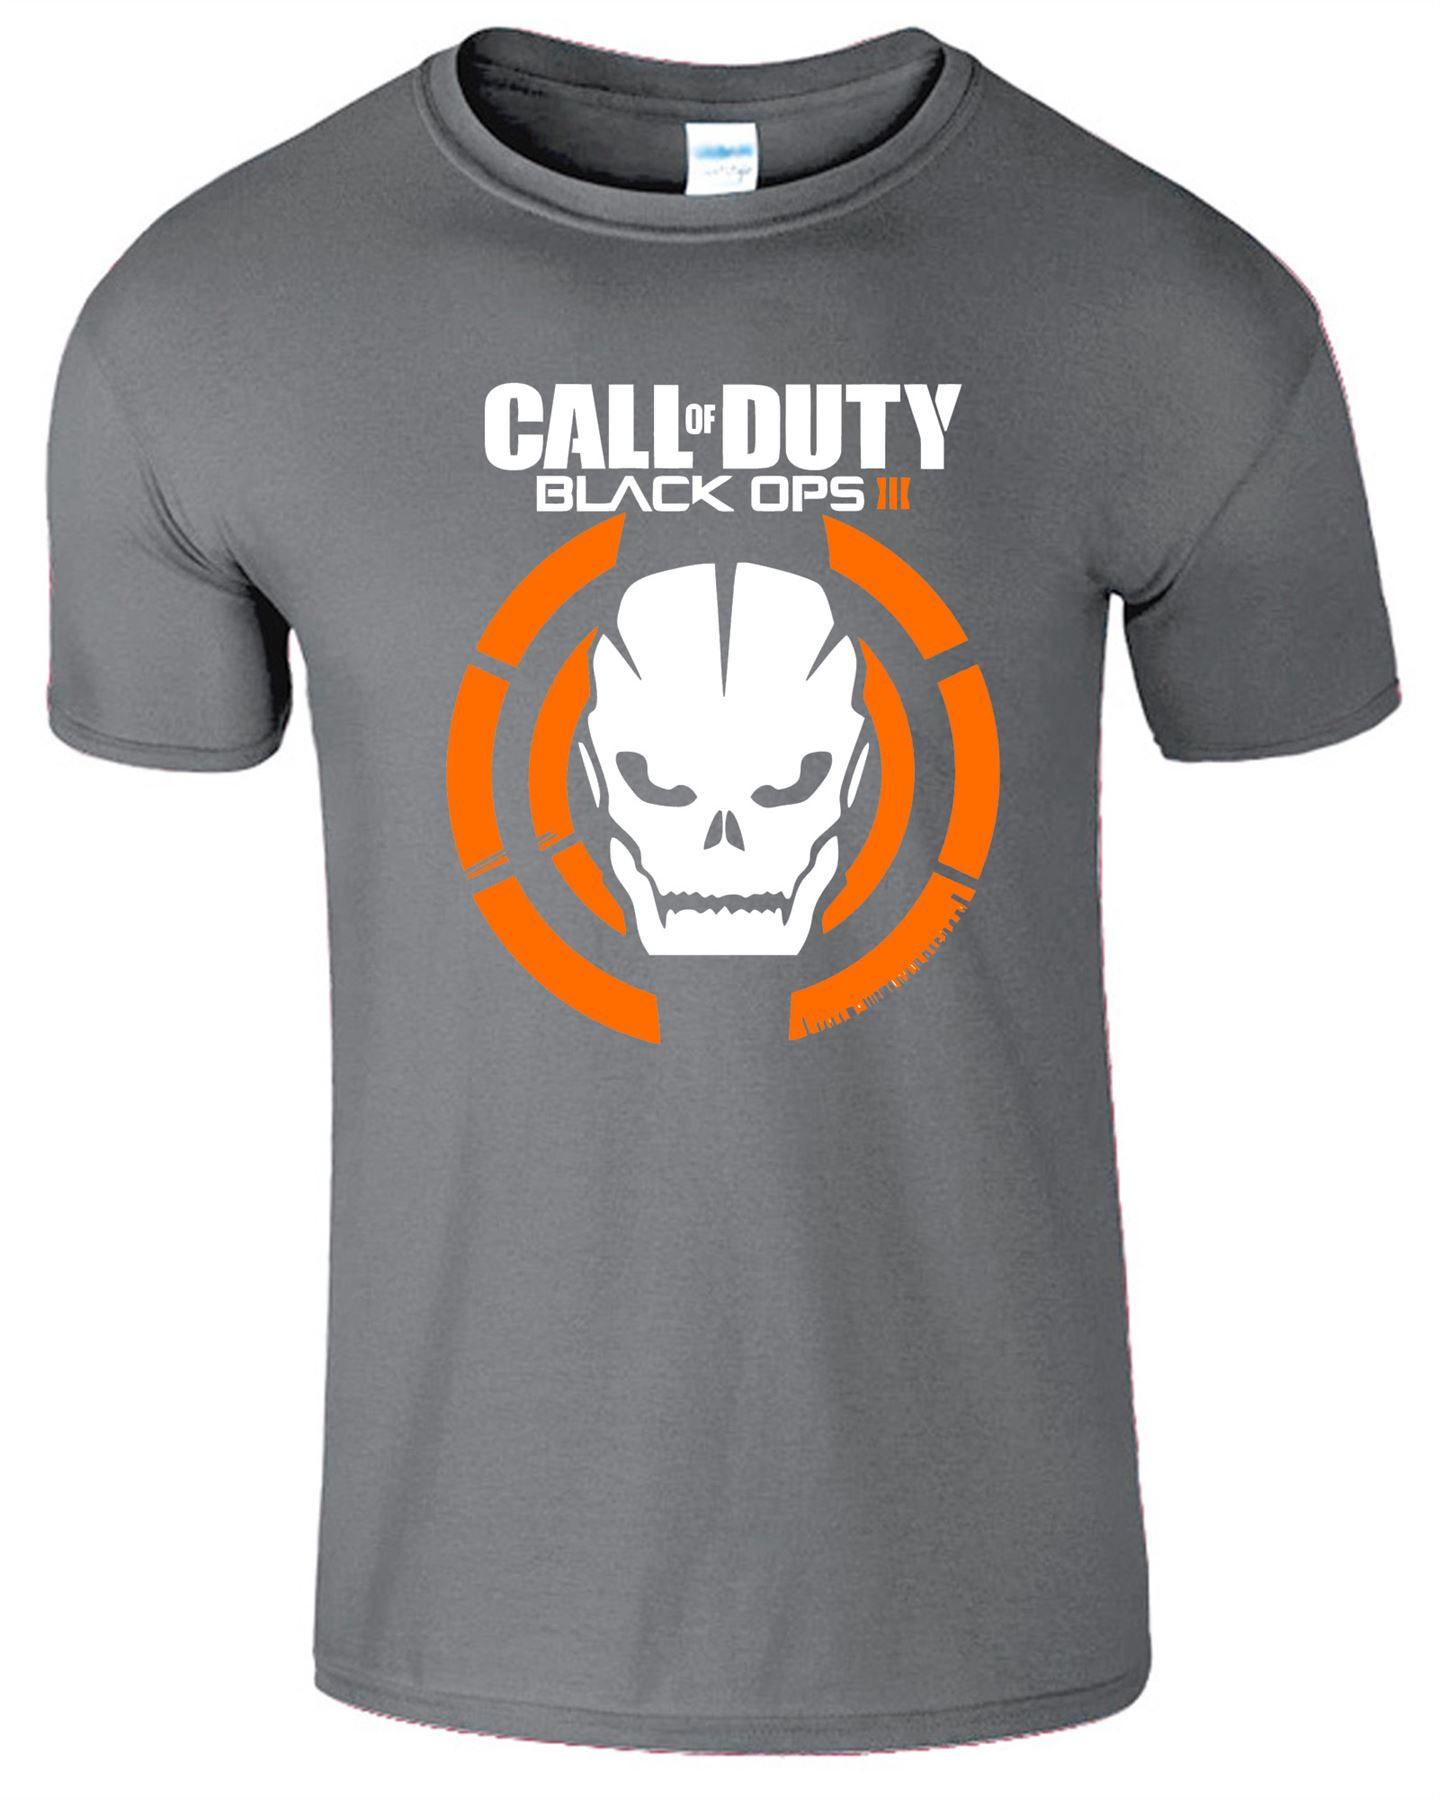 Duty-Black-Ops-Xbox-PS3-PS4-Game-Logo-With-Skull-Mens-Tshirt-Tee-Top-Gift miniatuur 2